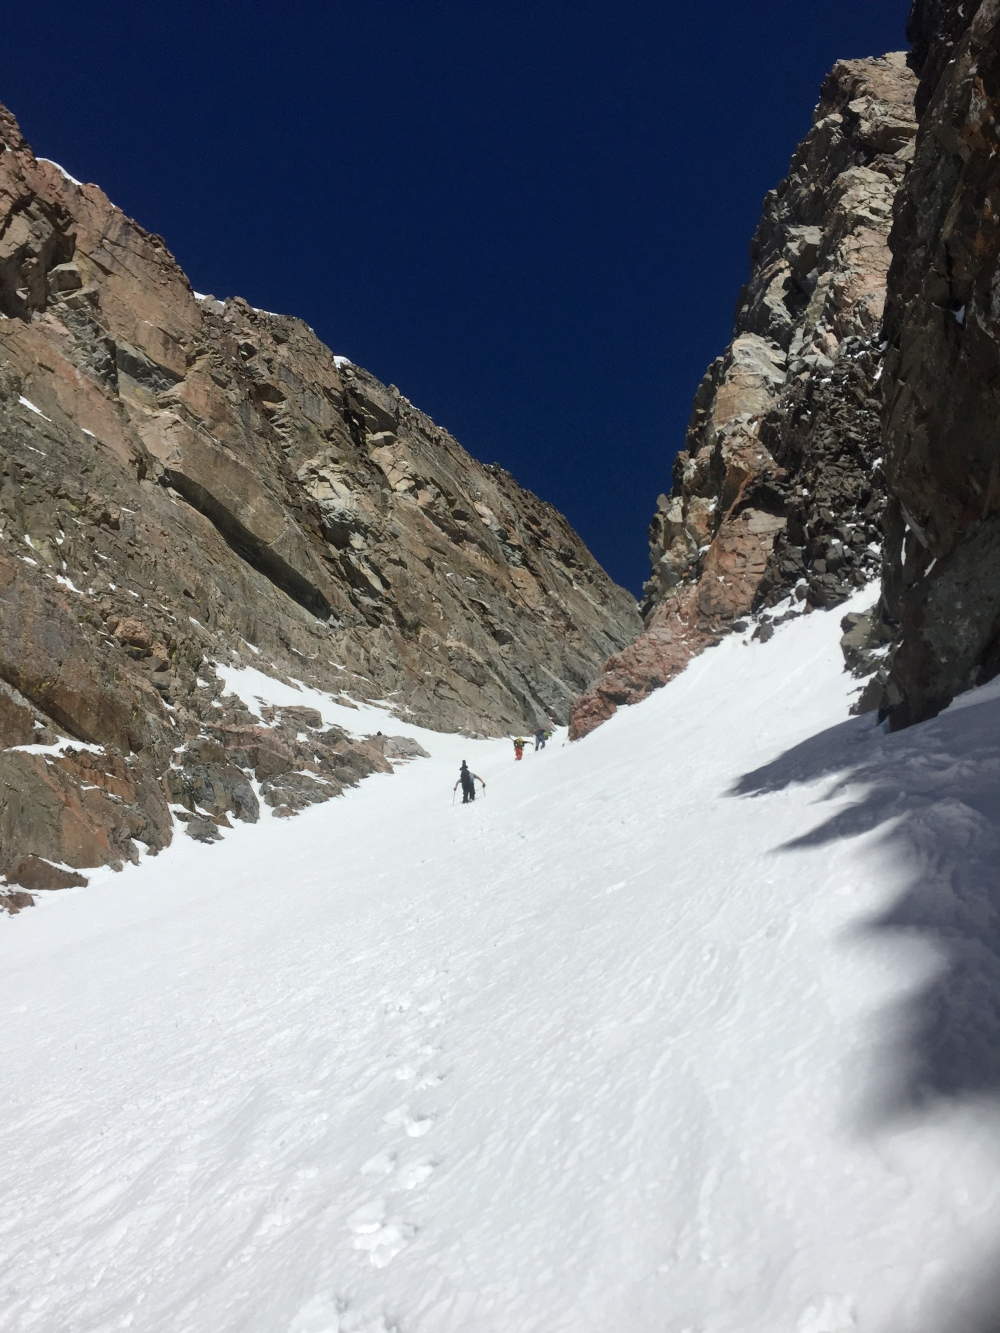 The team chasing the shade up the Couloir.